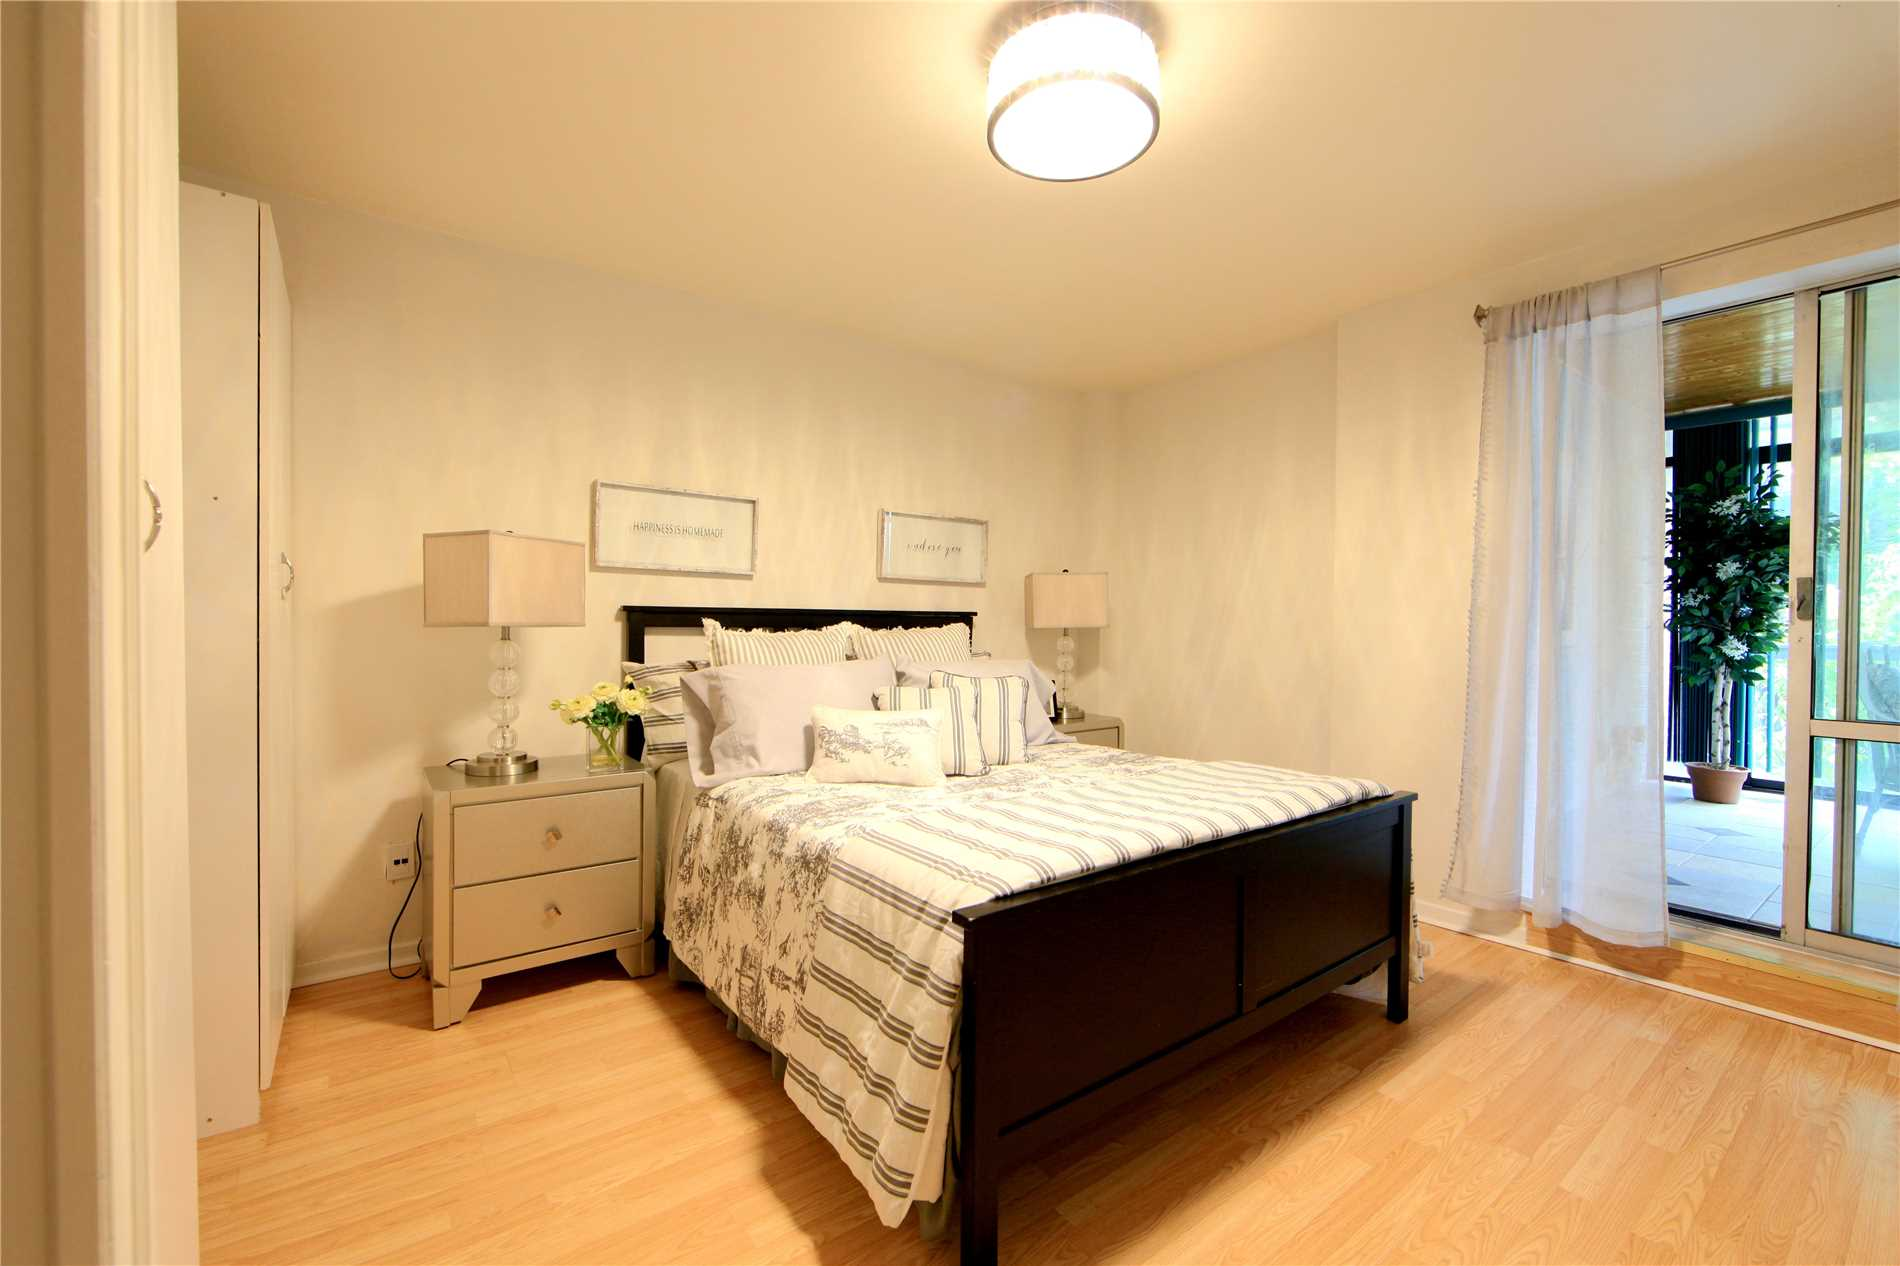 #101 - 3025 The Credit Woodlands, Mississauga W4475183